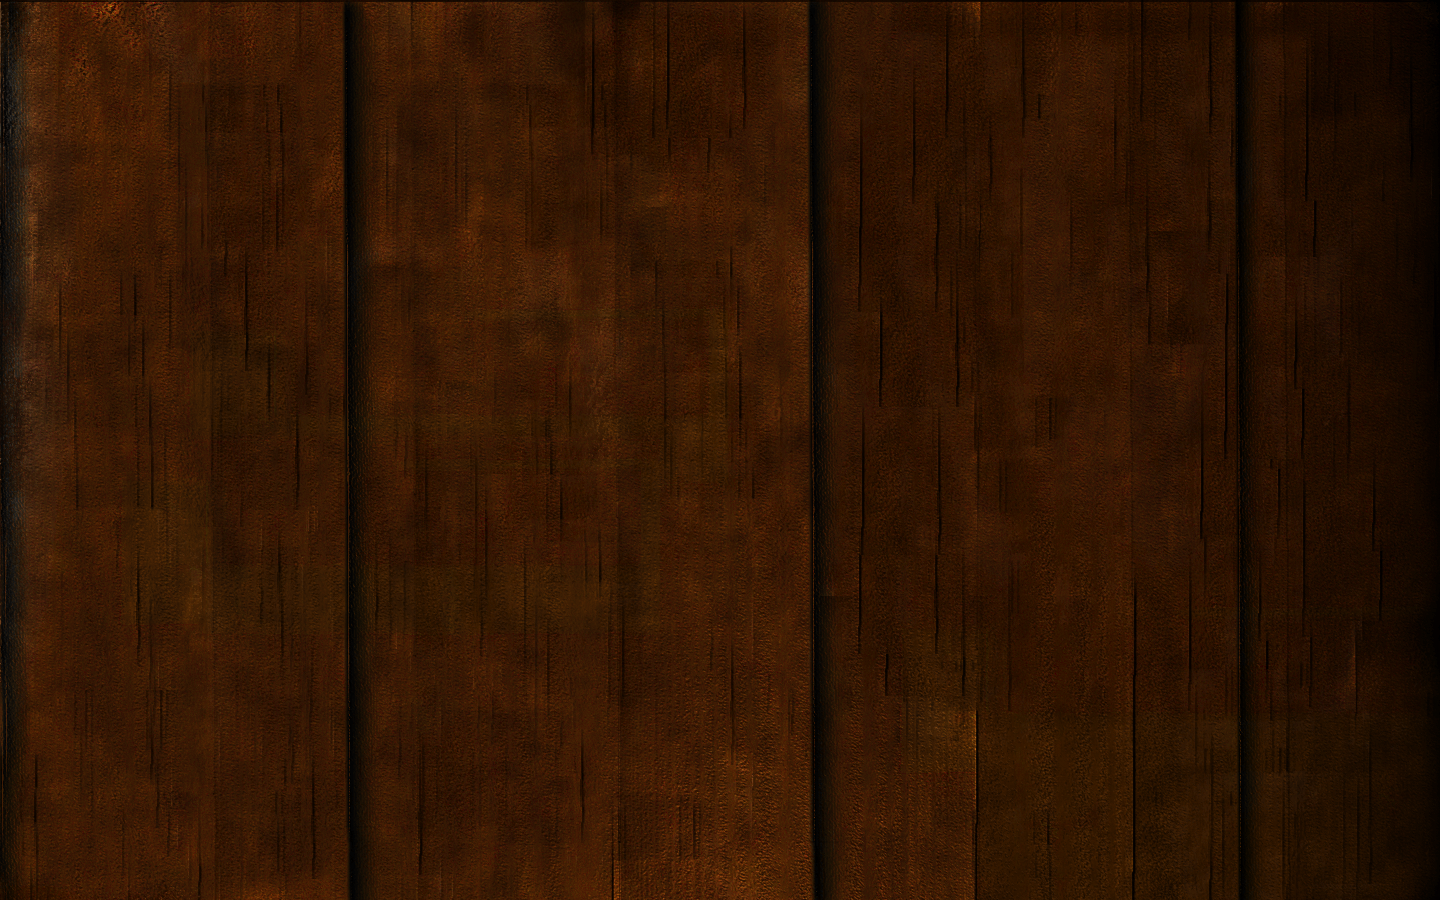 wood wallpaper, abstract wallpaper, abstract wood, desktop art